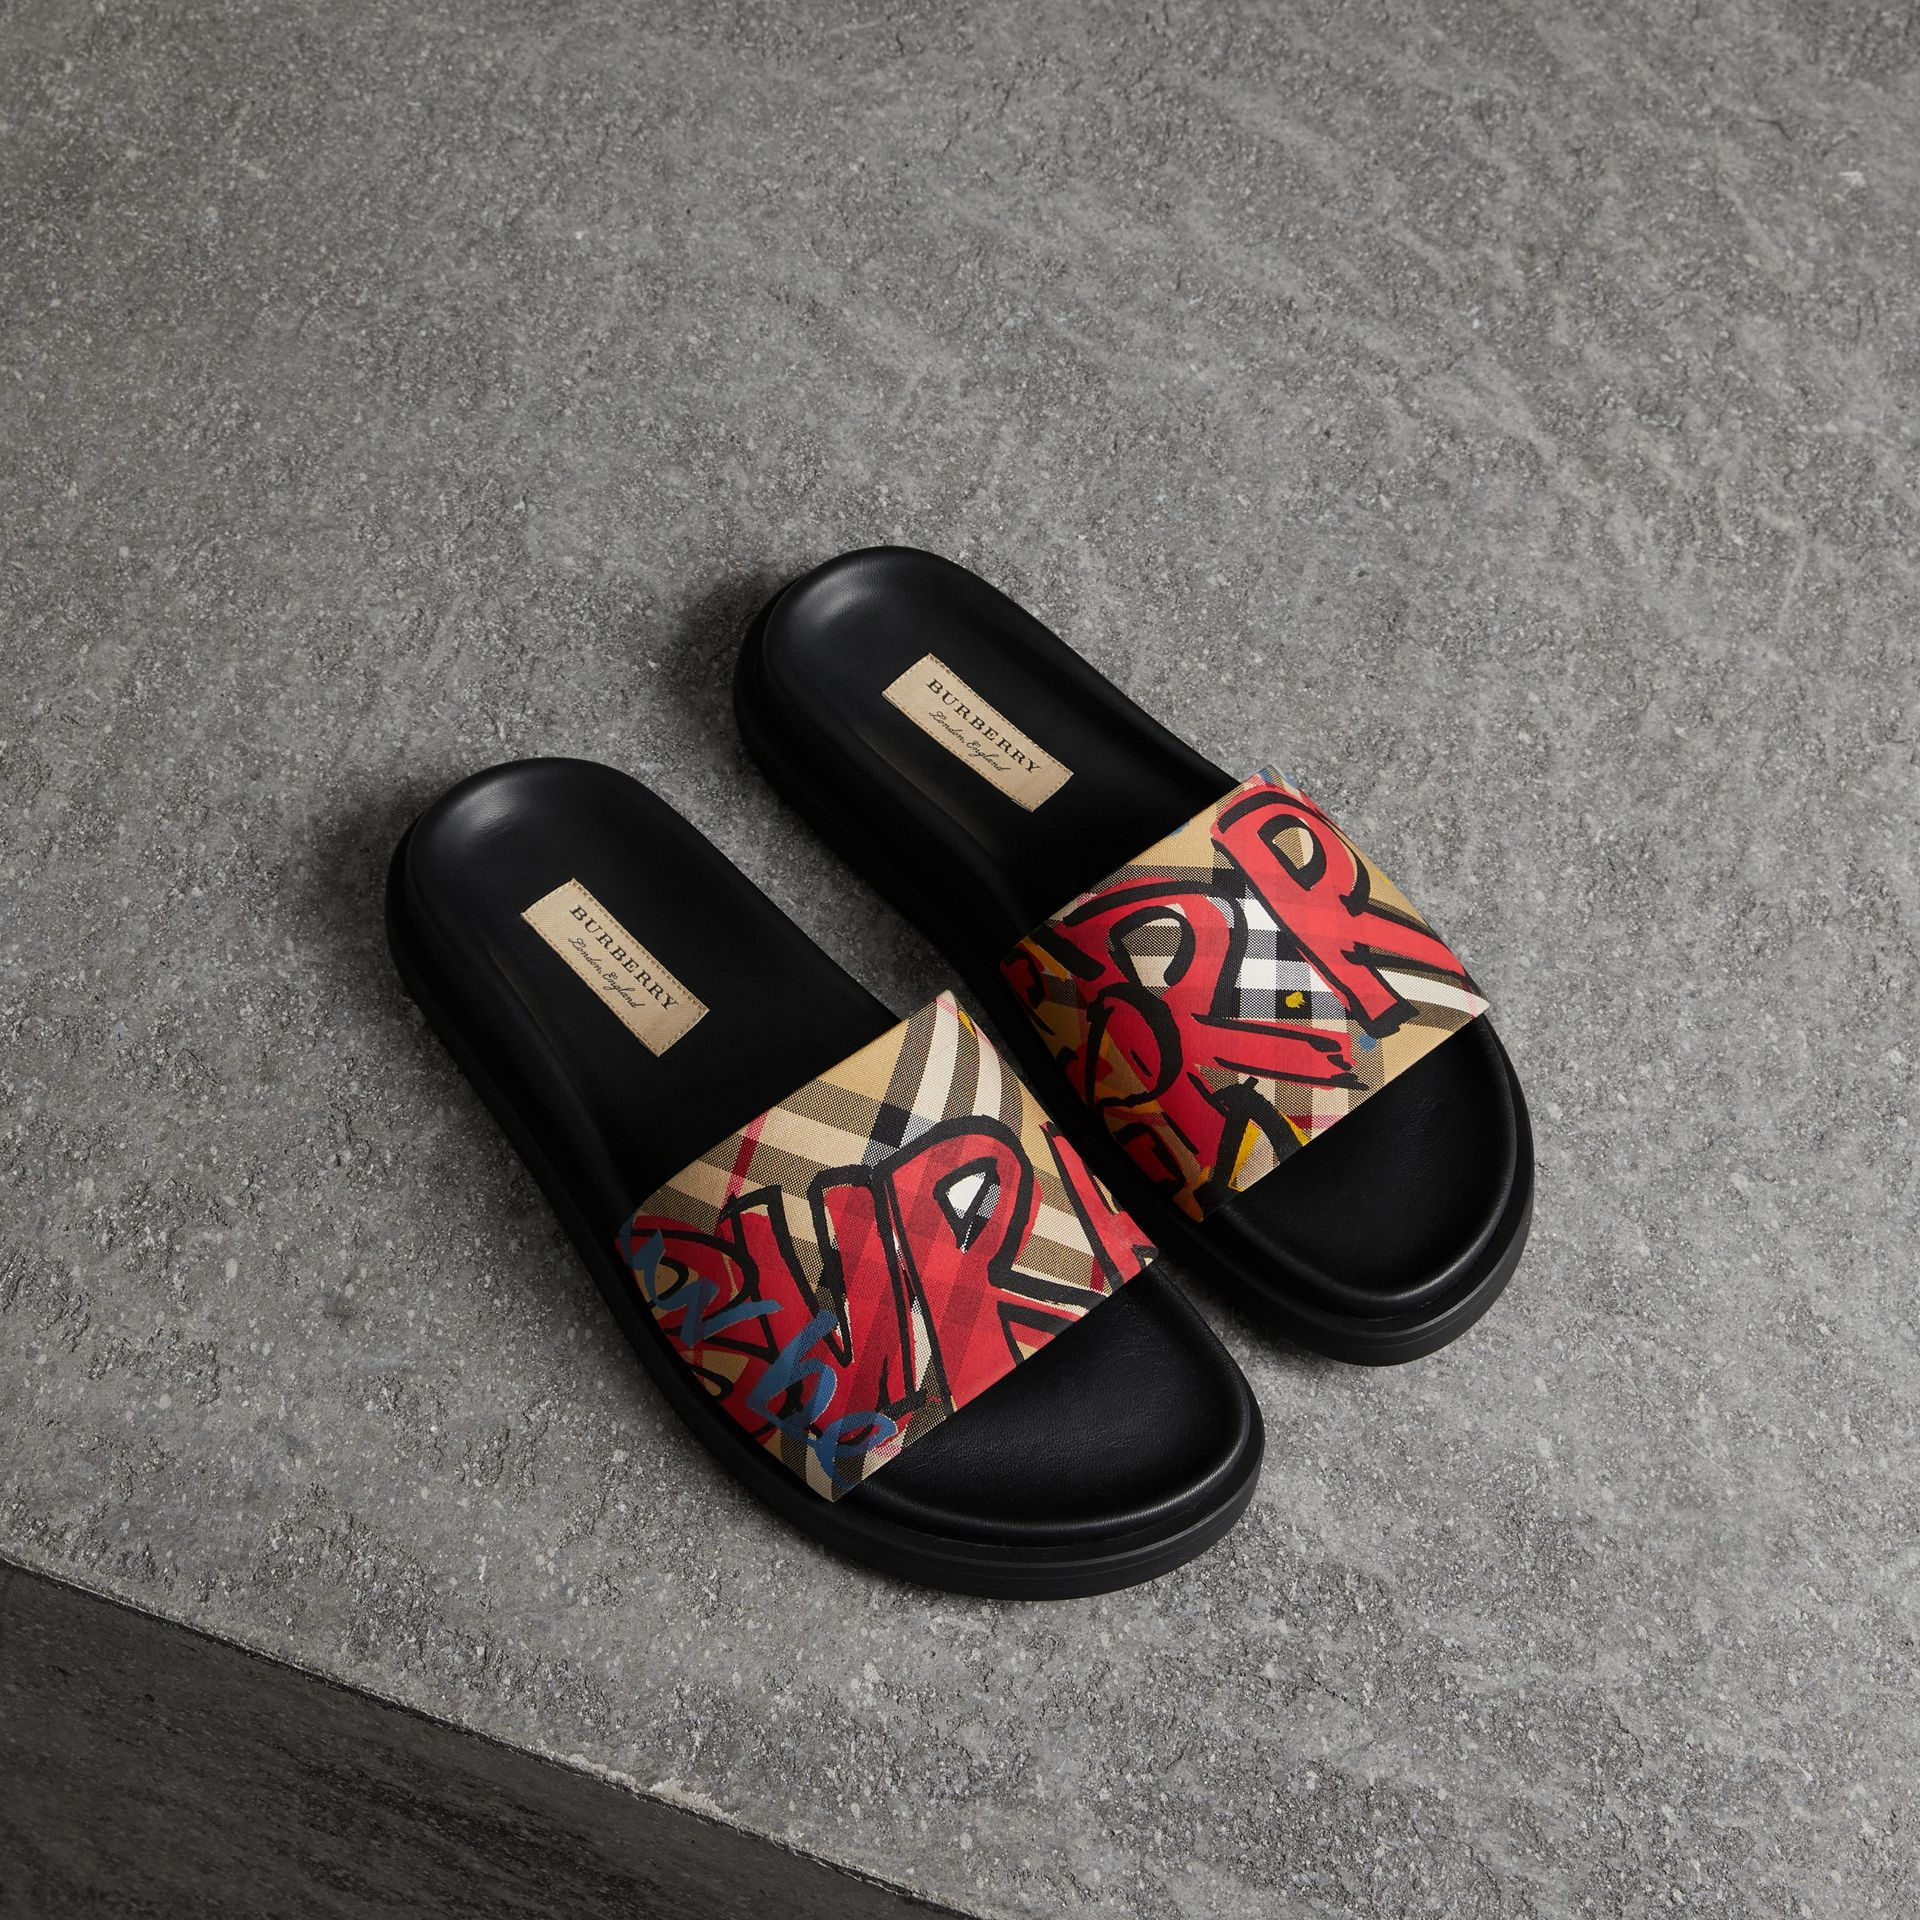 5f3ec7fd529e4 BURBERRY Graffiti Print Vintage Check and Leather Slides.  burberry  shoes